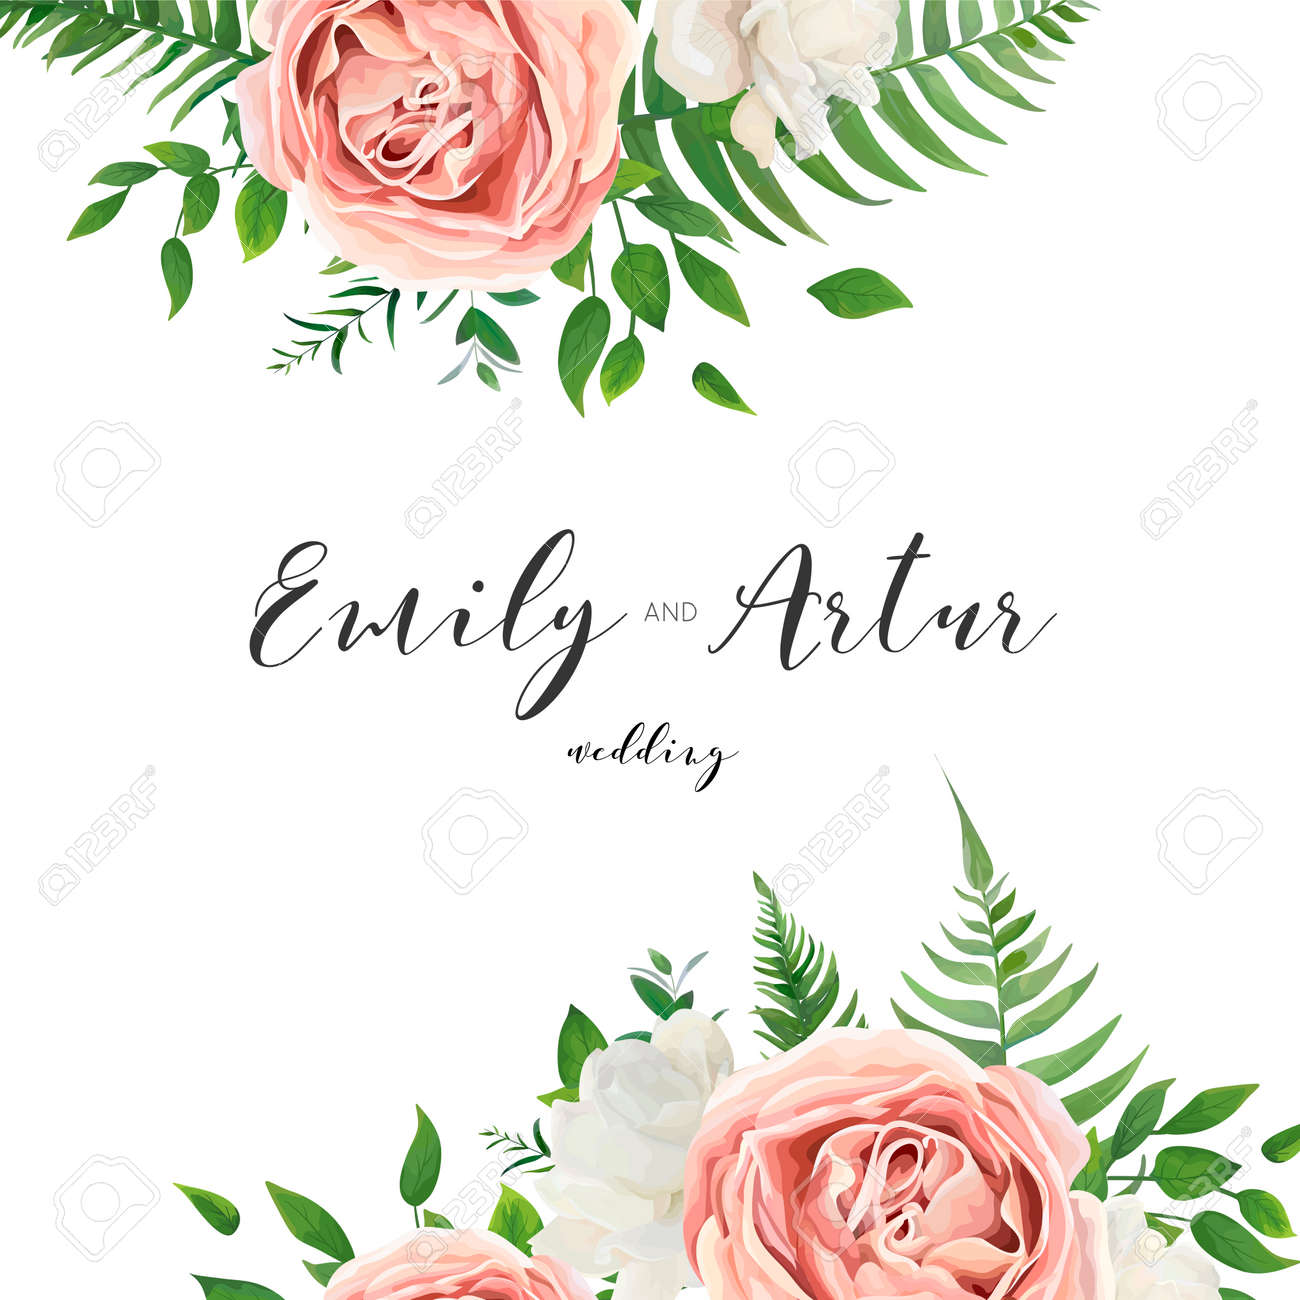 Wedding vector invitation floral invite card with watercolor vector wedding vector invitation floral invite card with watercolor style blush pink garden roses white peony flowers green eucalyptus tree leaves stopboris Gallery